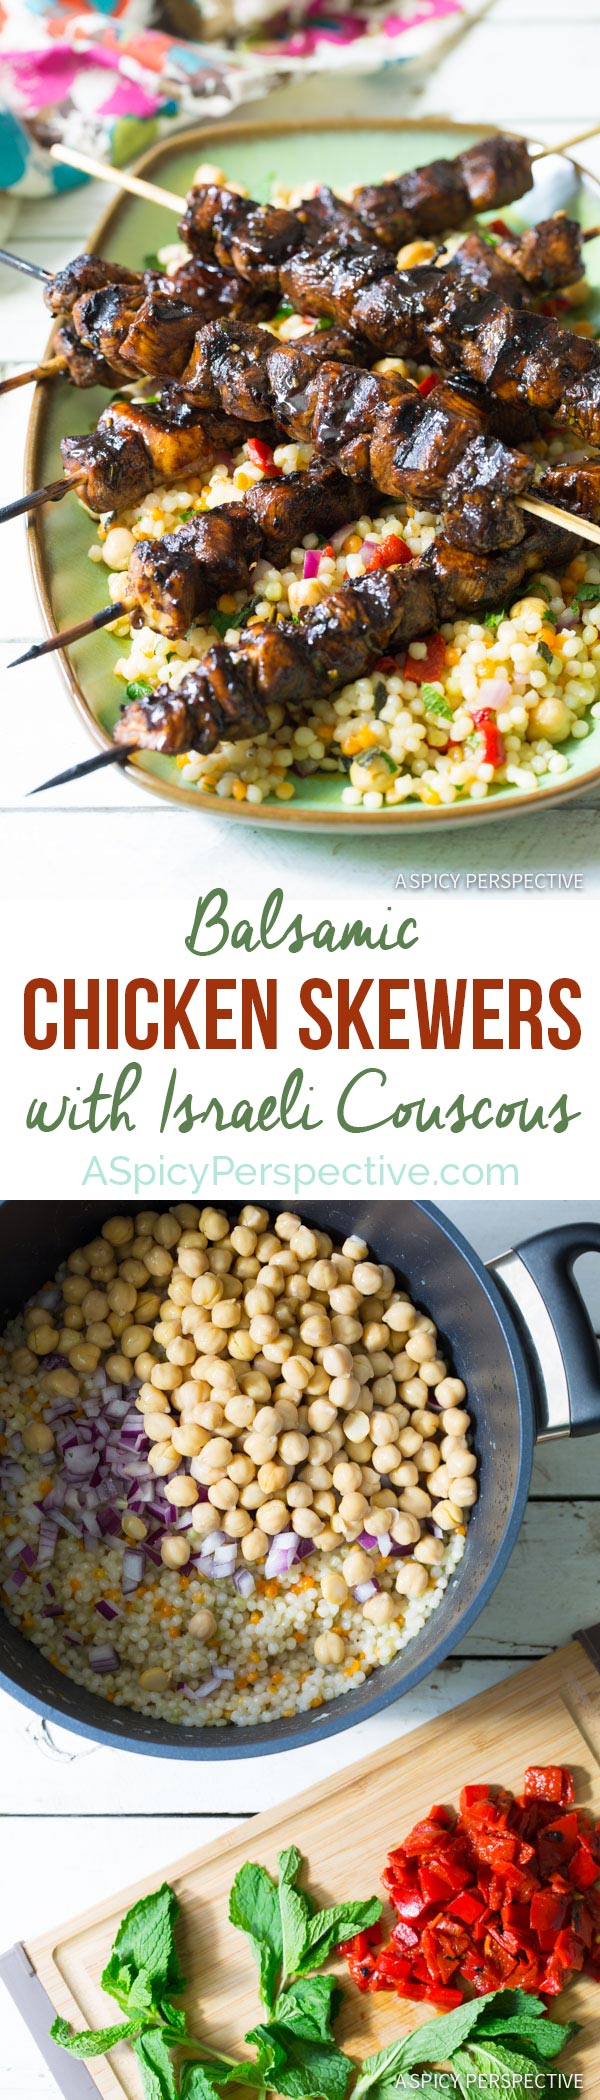 Easy Balsamic Chicken Skewers with Israeli Couscous! #dinner #farmtogrill